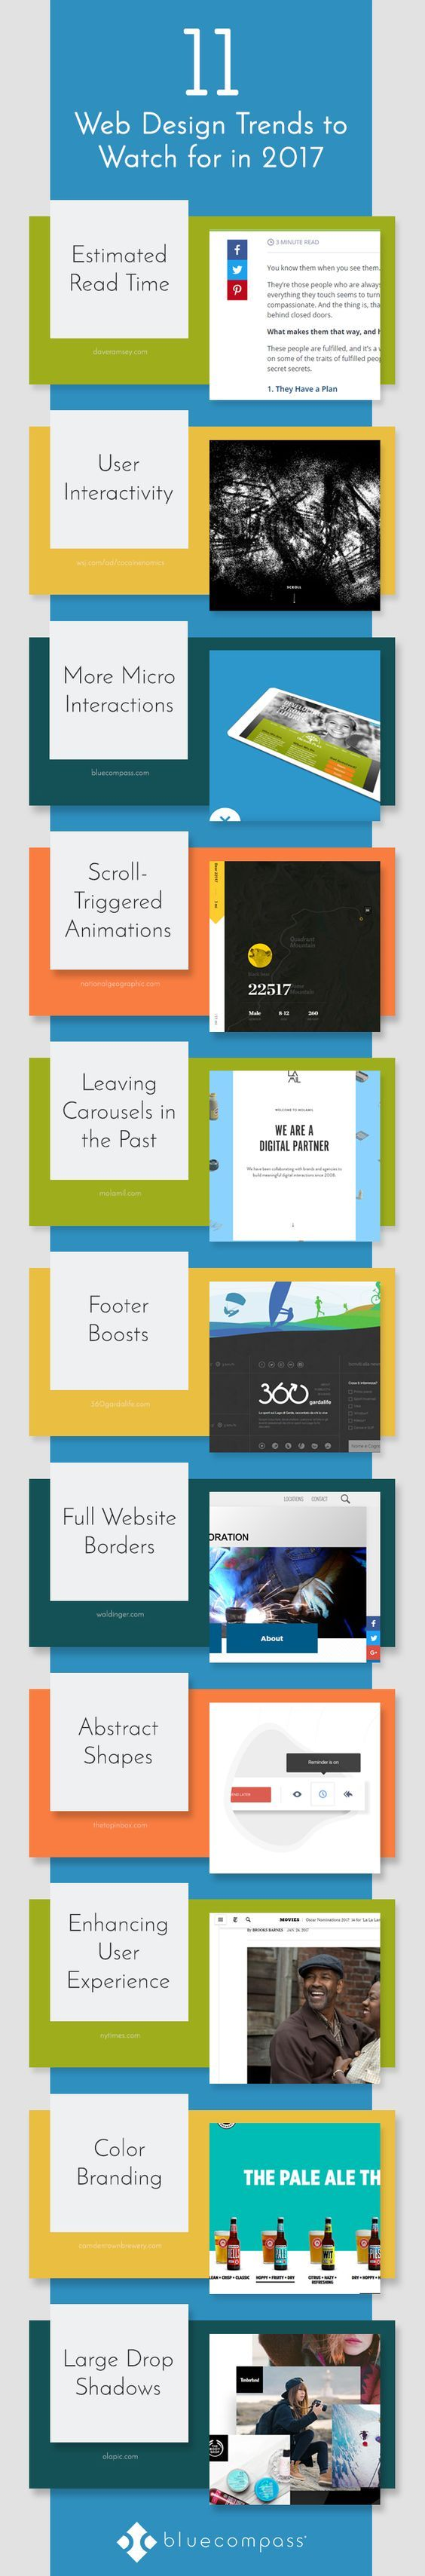 The Future of Web Design: 11 Features You Will See in 2017 and Beyond [Infographic]